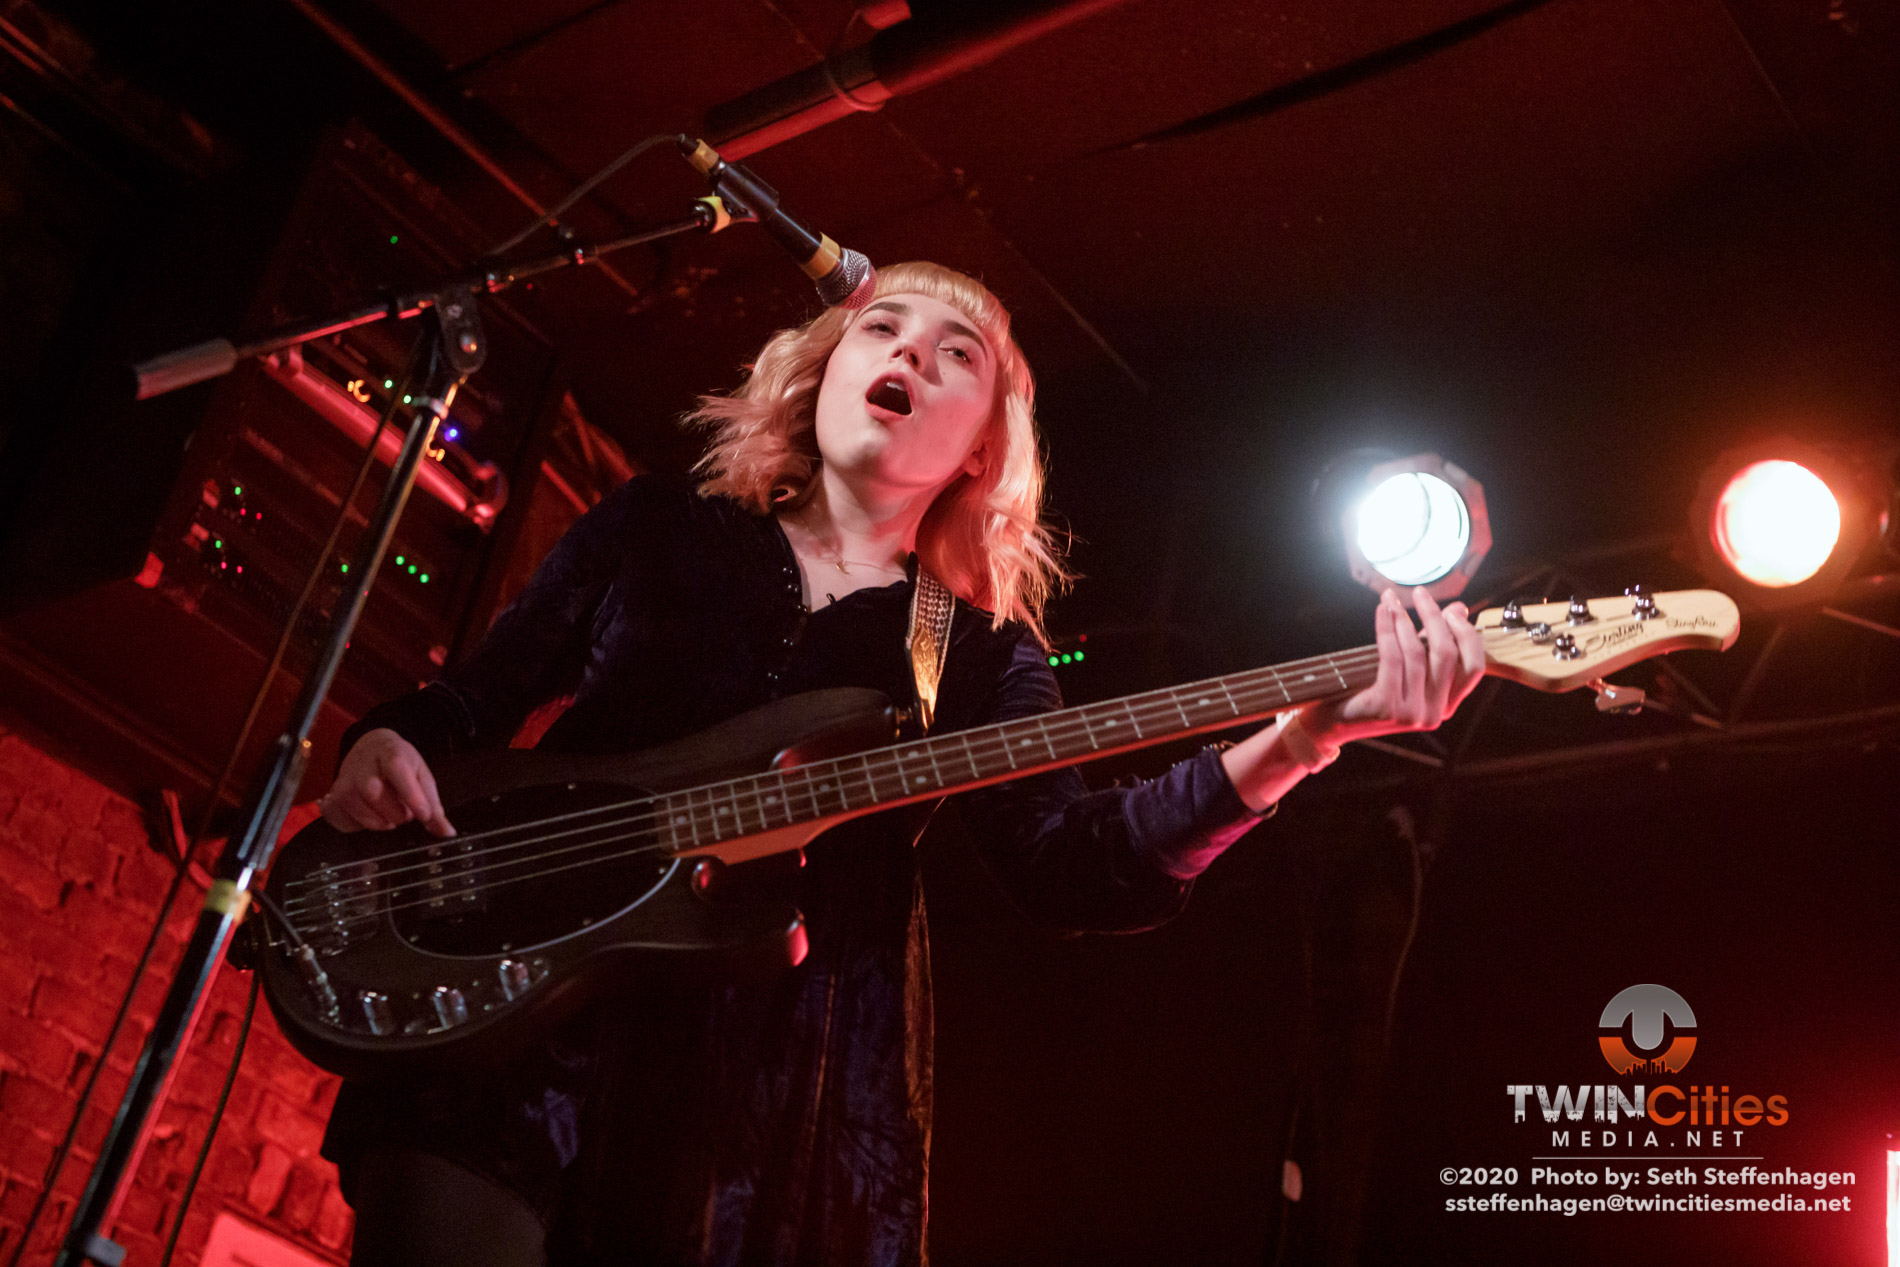 March 1, 2020 - Minneapolis, Minnesota, United States - Coyote Kid live in concert at Whiskey Junction along with Careful Gaze, Vermillion Heights, Cities Never Sleep and Left Unread as the openers.  (Photo by Seth Steffenhagen/Steffenhagen Photography)